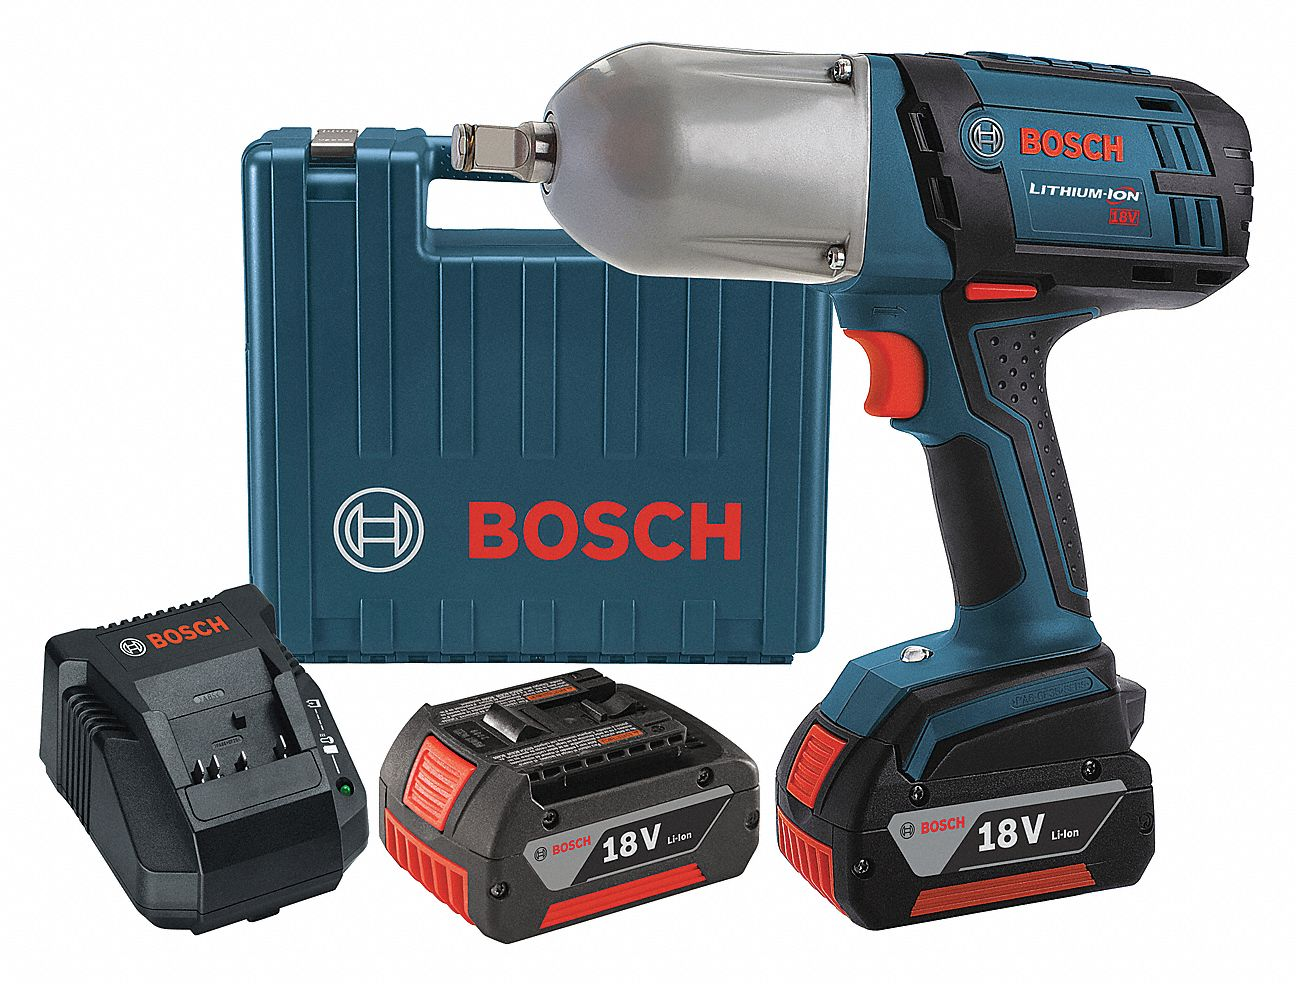 Bosch 1 2 Cordless Impact Wrench Kit 18 0 Voltage 500 Ft Lb Max Torque Battery Included 4wlk8 Iwht180 01 Grainger